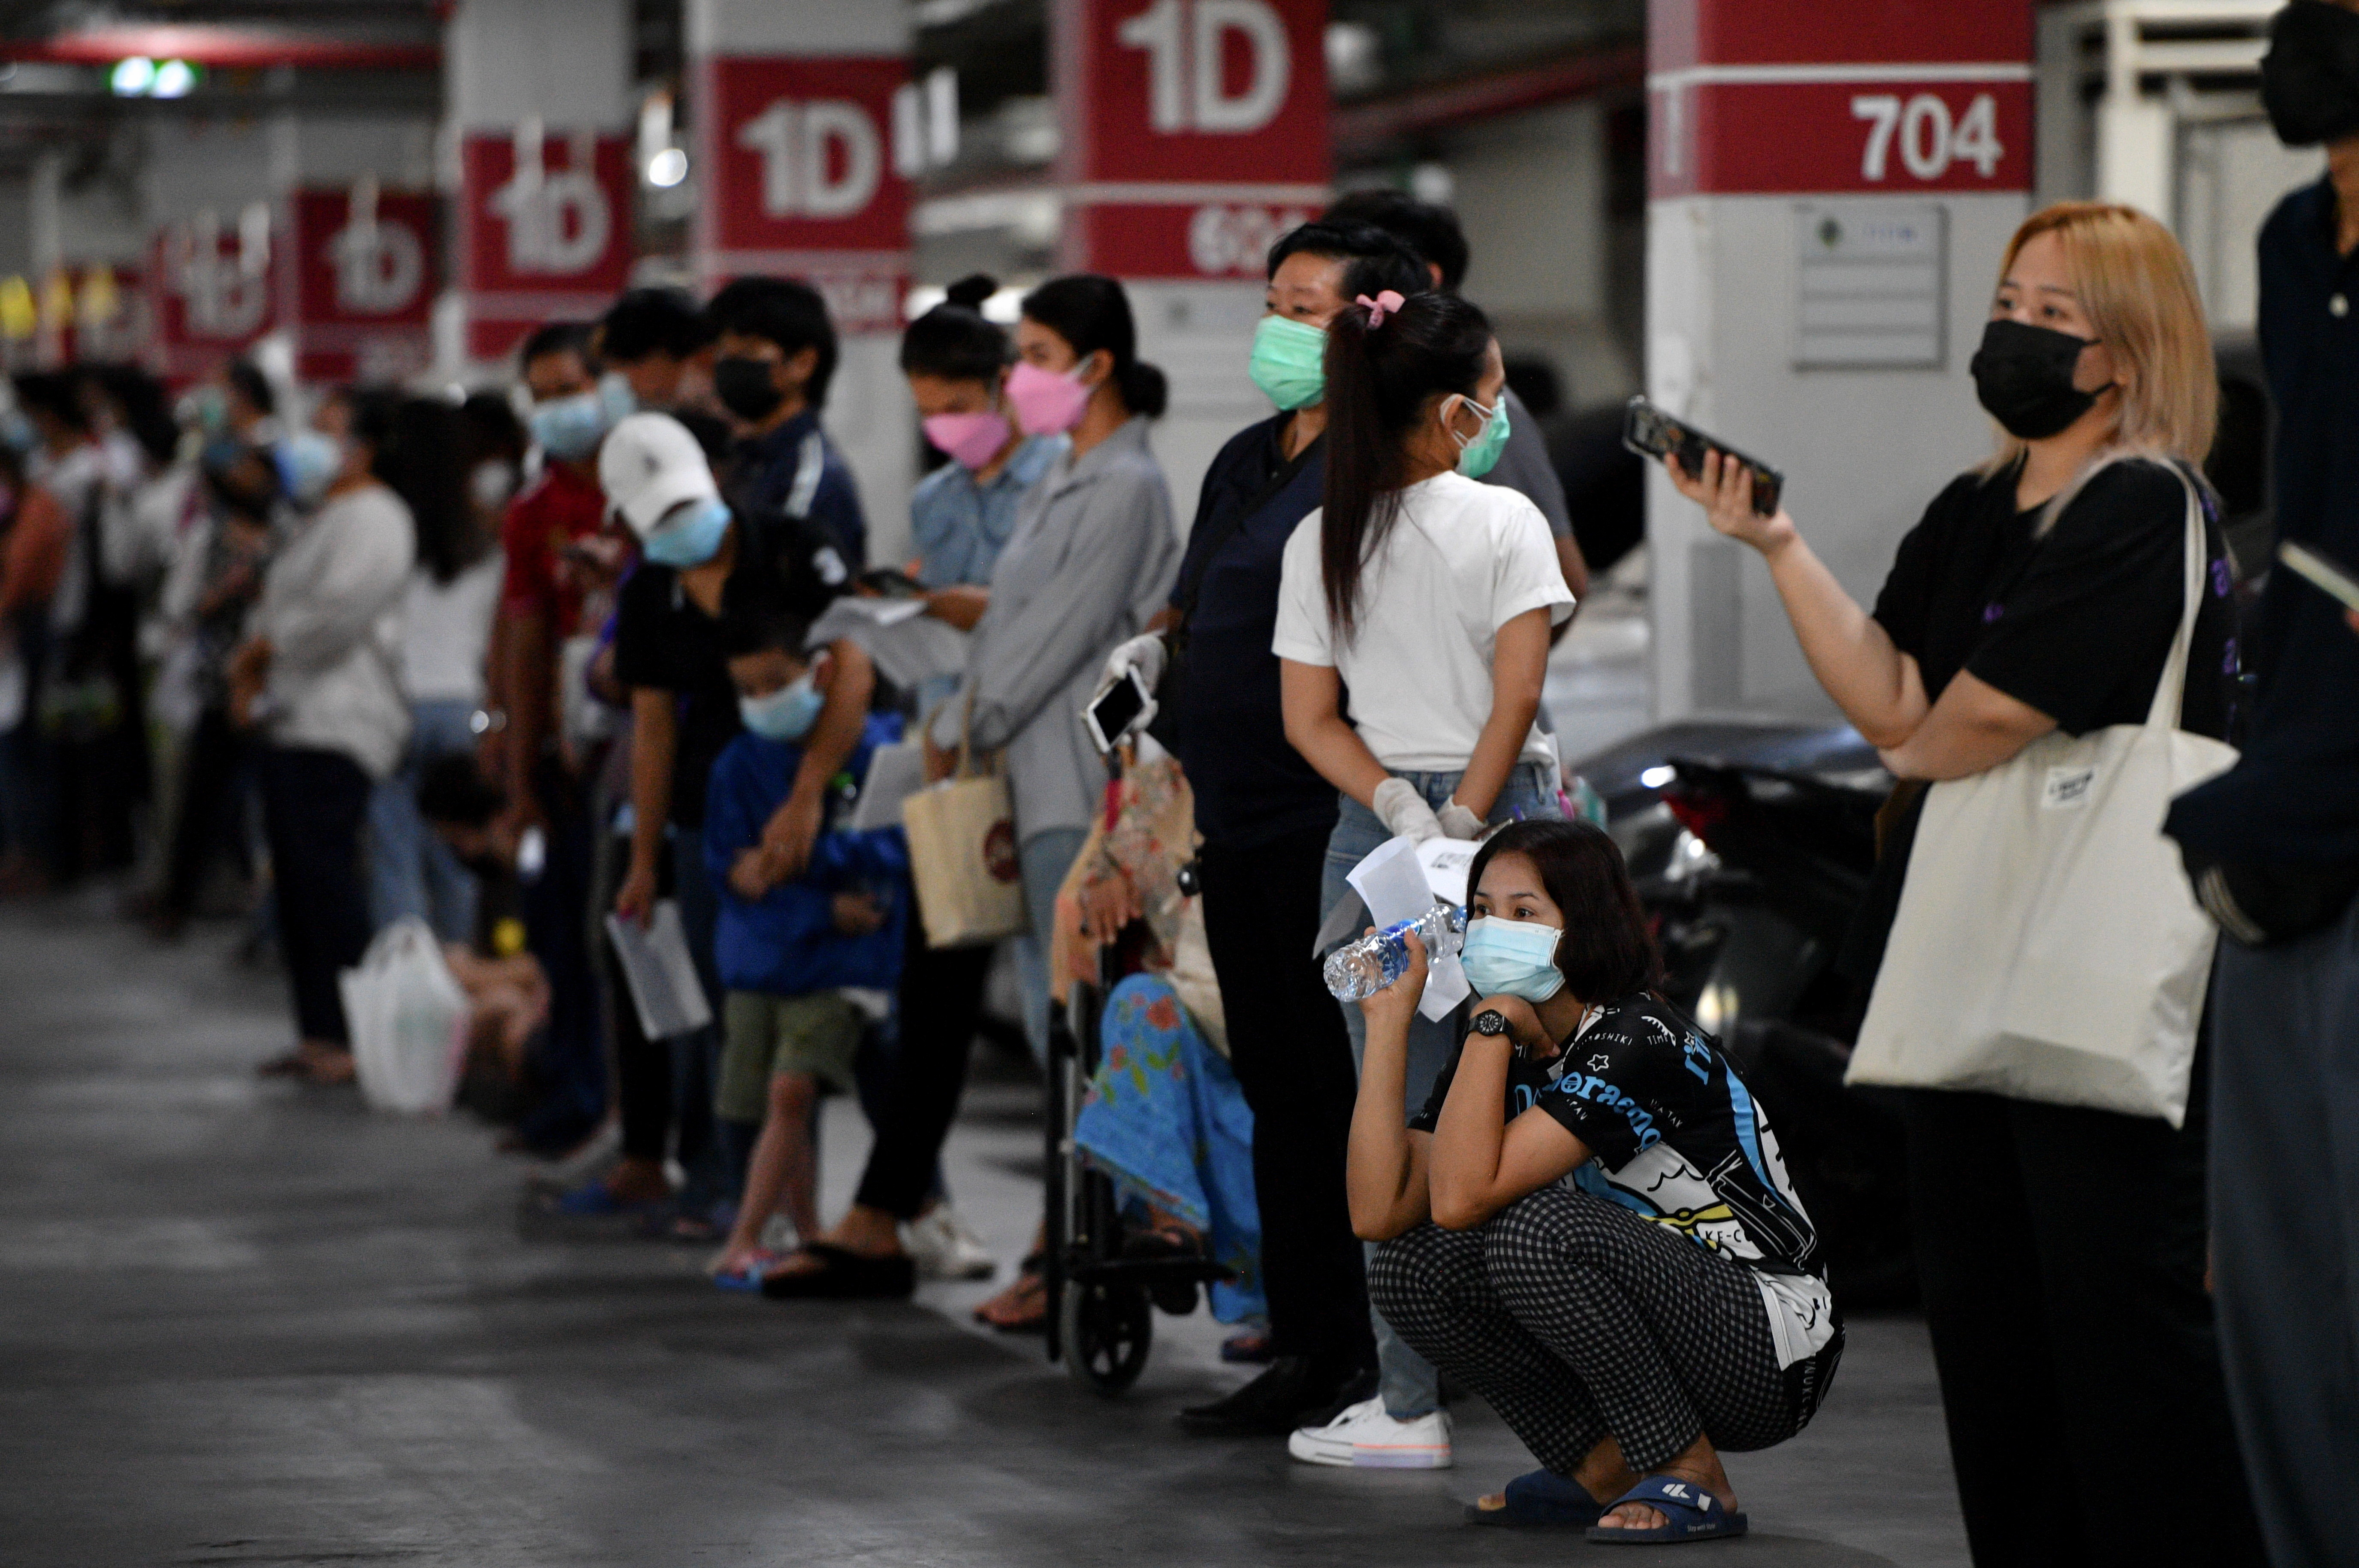 People queue for free coronavirus disease (COVID-19) rapid antigen tests at a mass testing station, as the spread of COVID-19 continues, in Bangkok, Thailand, July 15, 2021. REUTERS/Chalinee Thirasupa - RC2WKO9R80TA